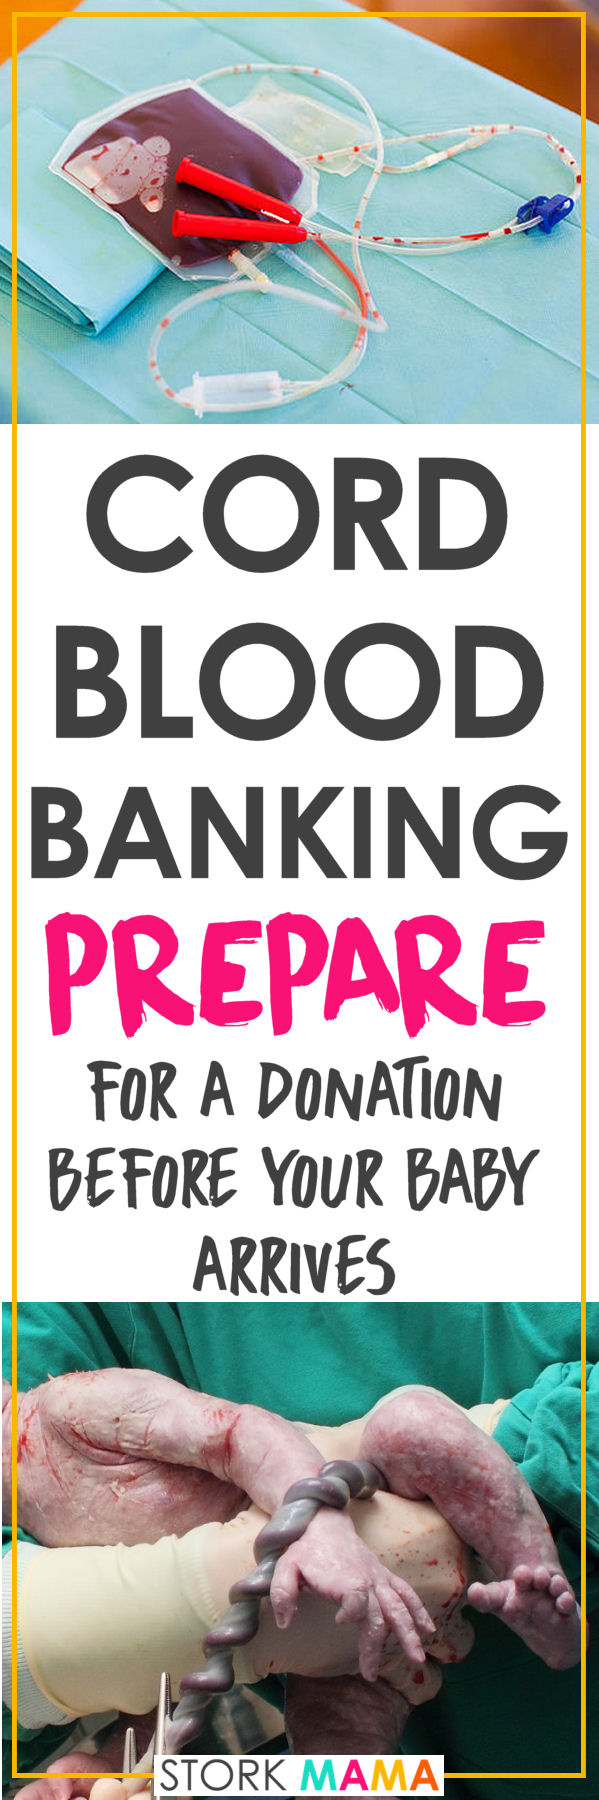 Cord blood banking is a huge health decision to make for your baby. The stem cells extracted from umbilical cord blood or cord tissue donation can be a potentially lifesaving health insurance for your family. You can opt for private use or donate to a public cord blood bank. This guide explains the costs of cord blood banking, the pros and cons, how to arrange cord blood banking and which companies you can contact. Cord Blood Banking Prep in Pregnancy – Stork Mama.